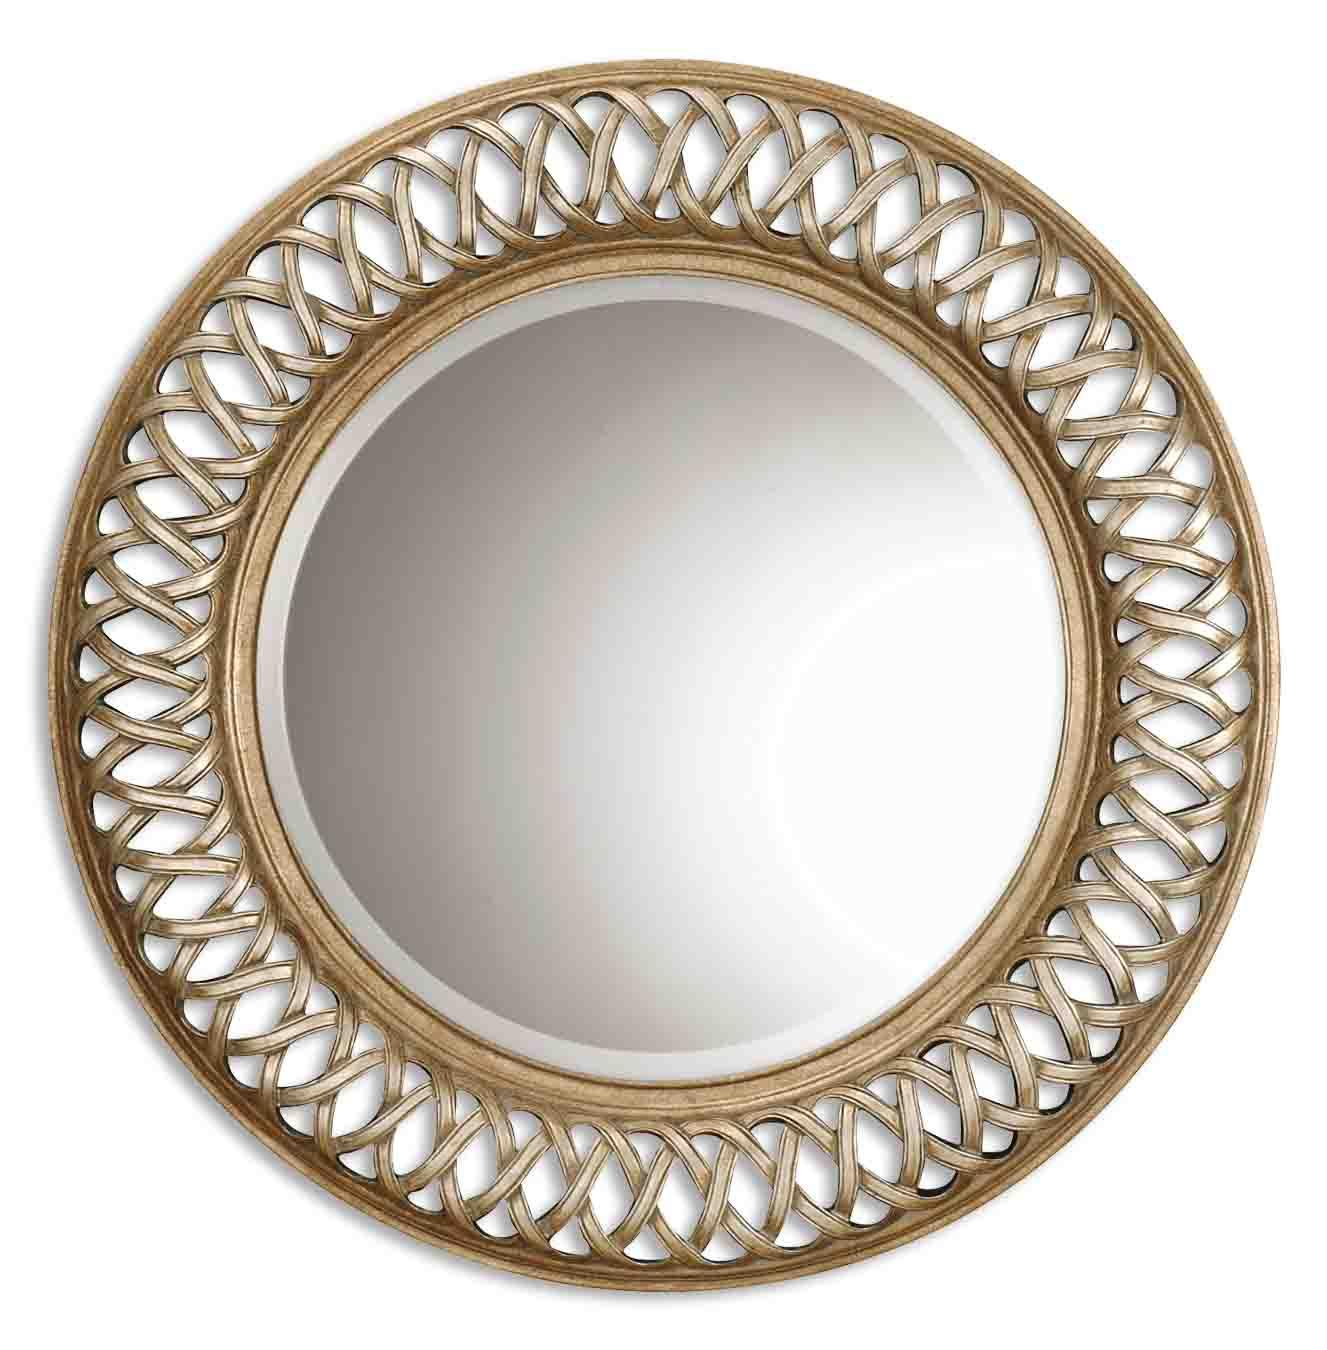 Entwined Round Mirror Uttermost Interiordecorating